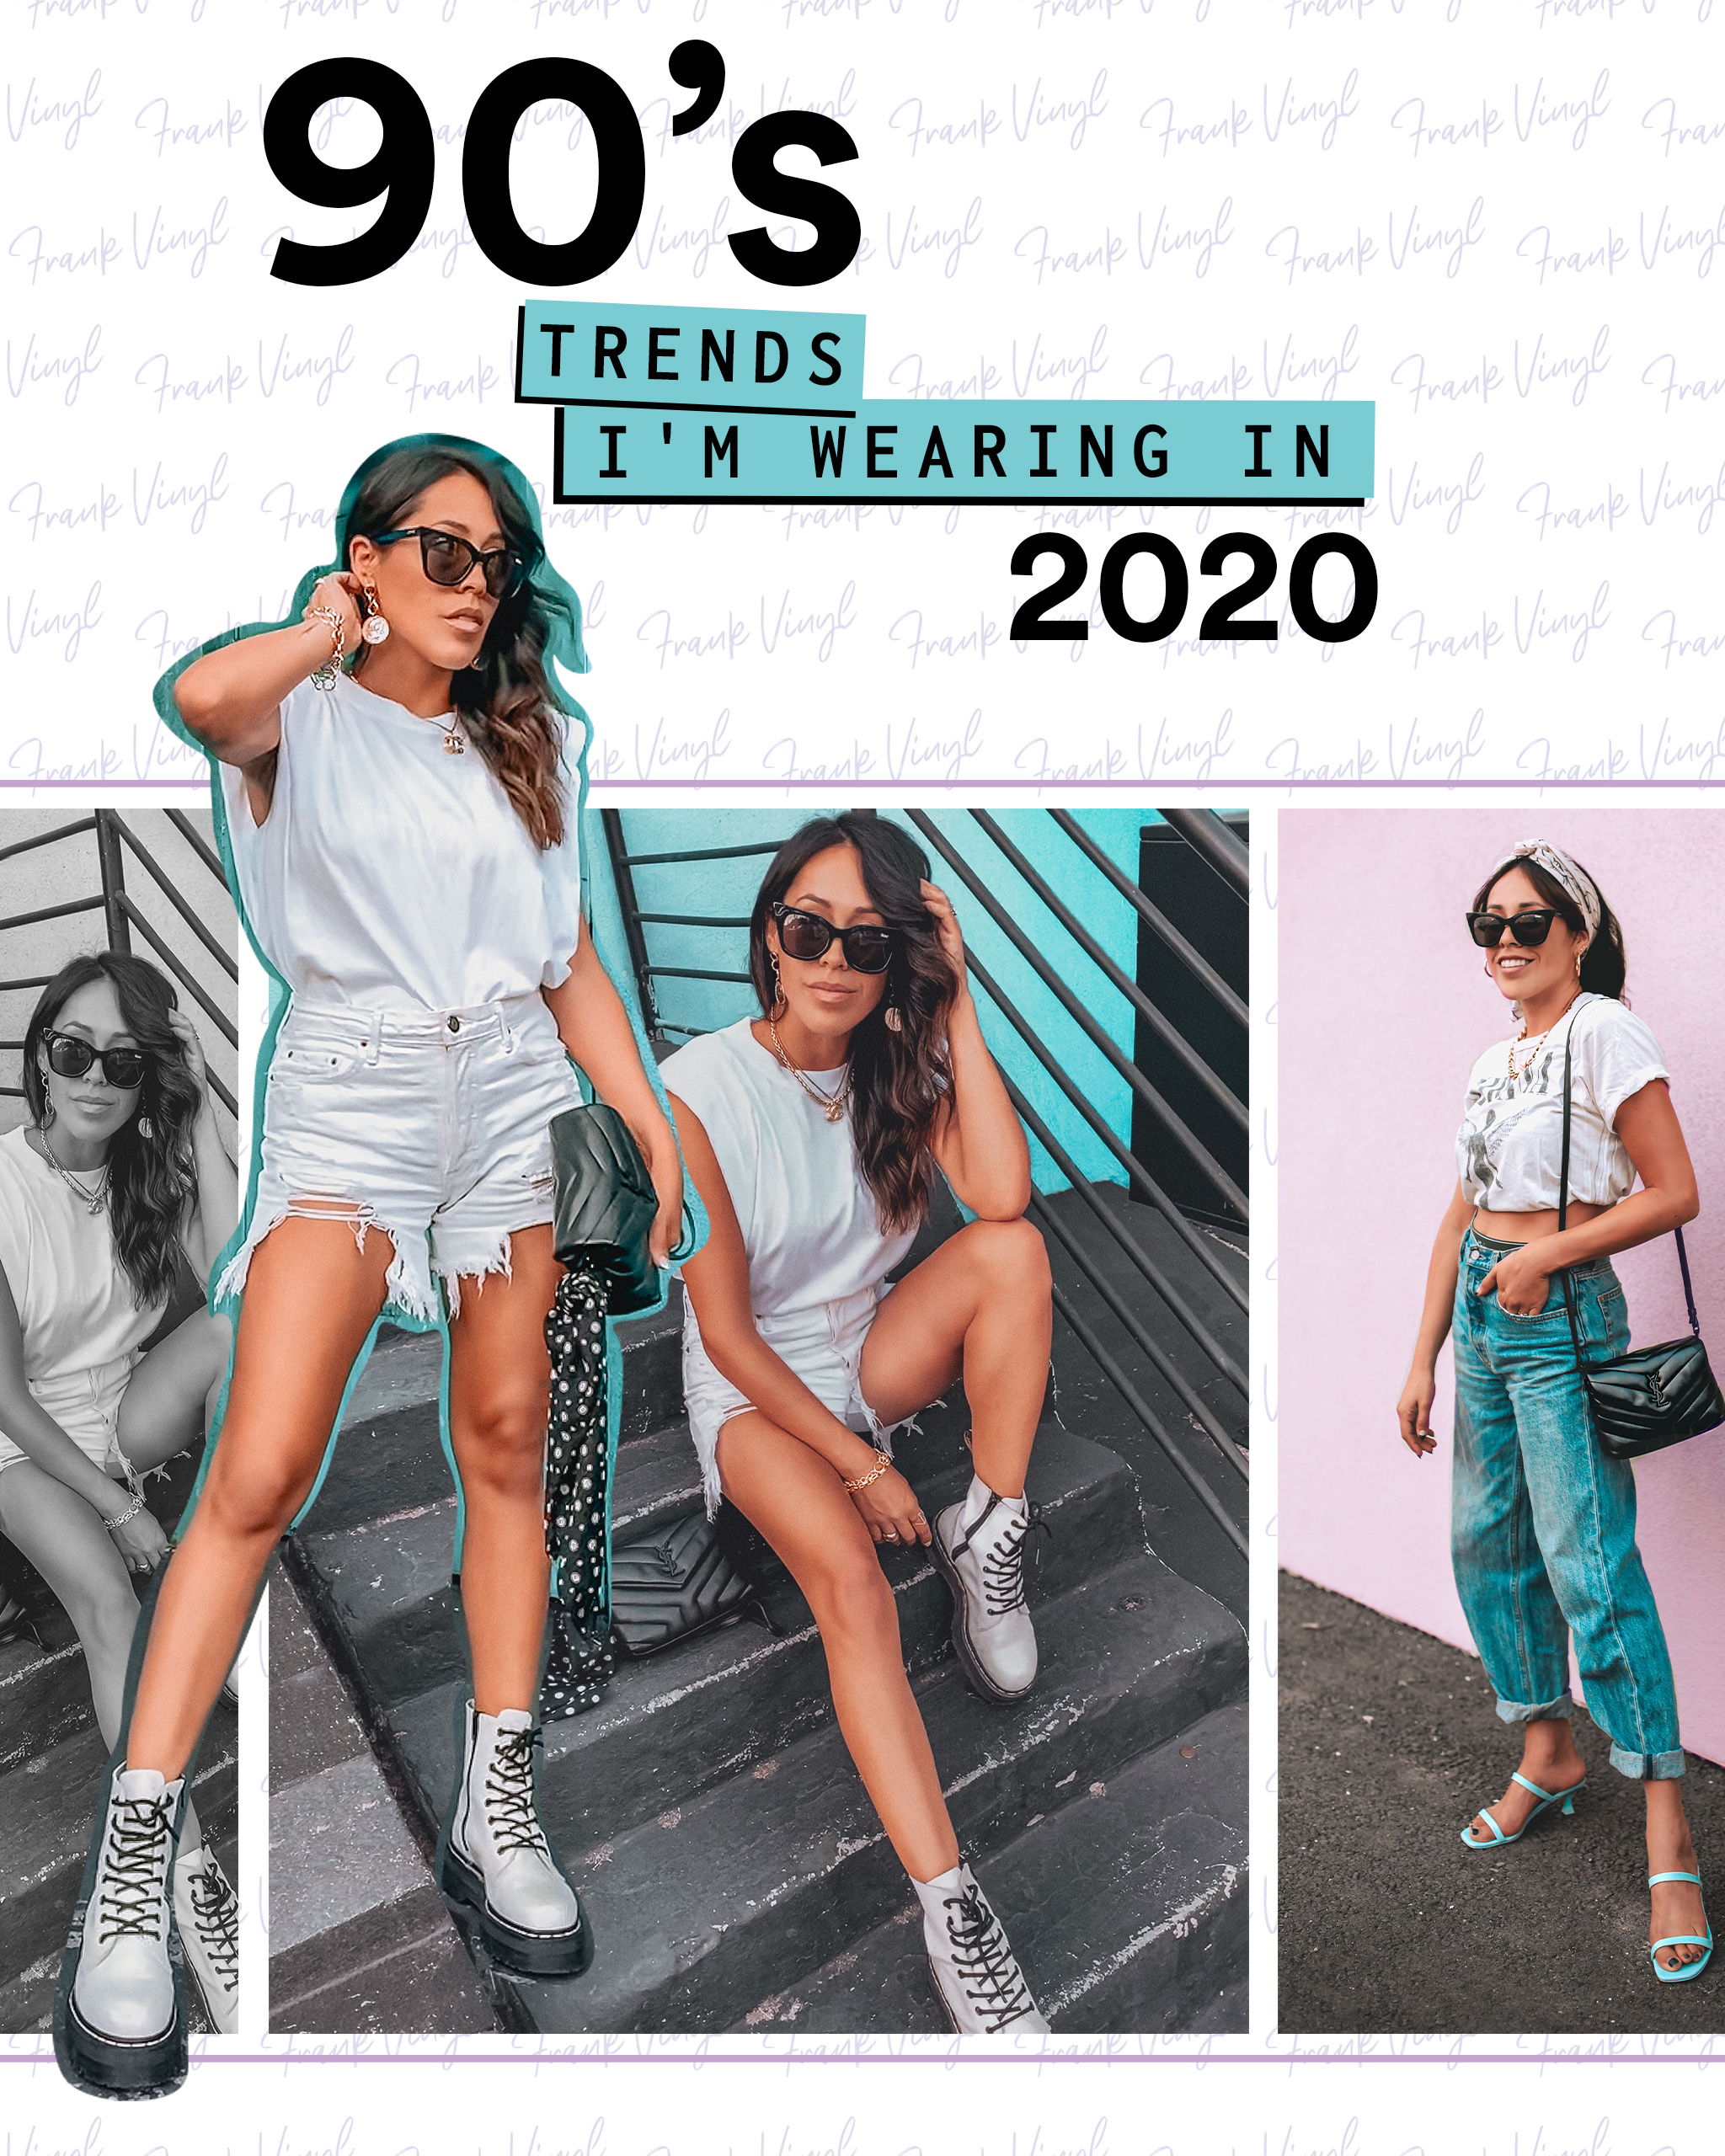 90s Trends I'm wearing in 2020